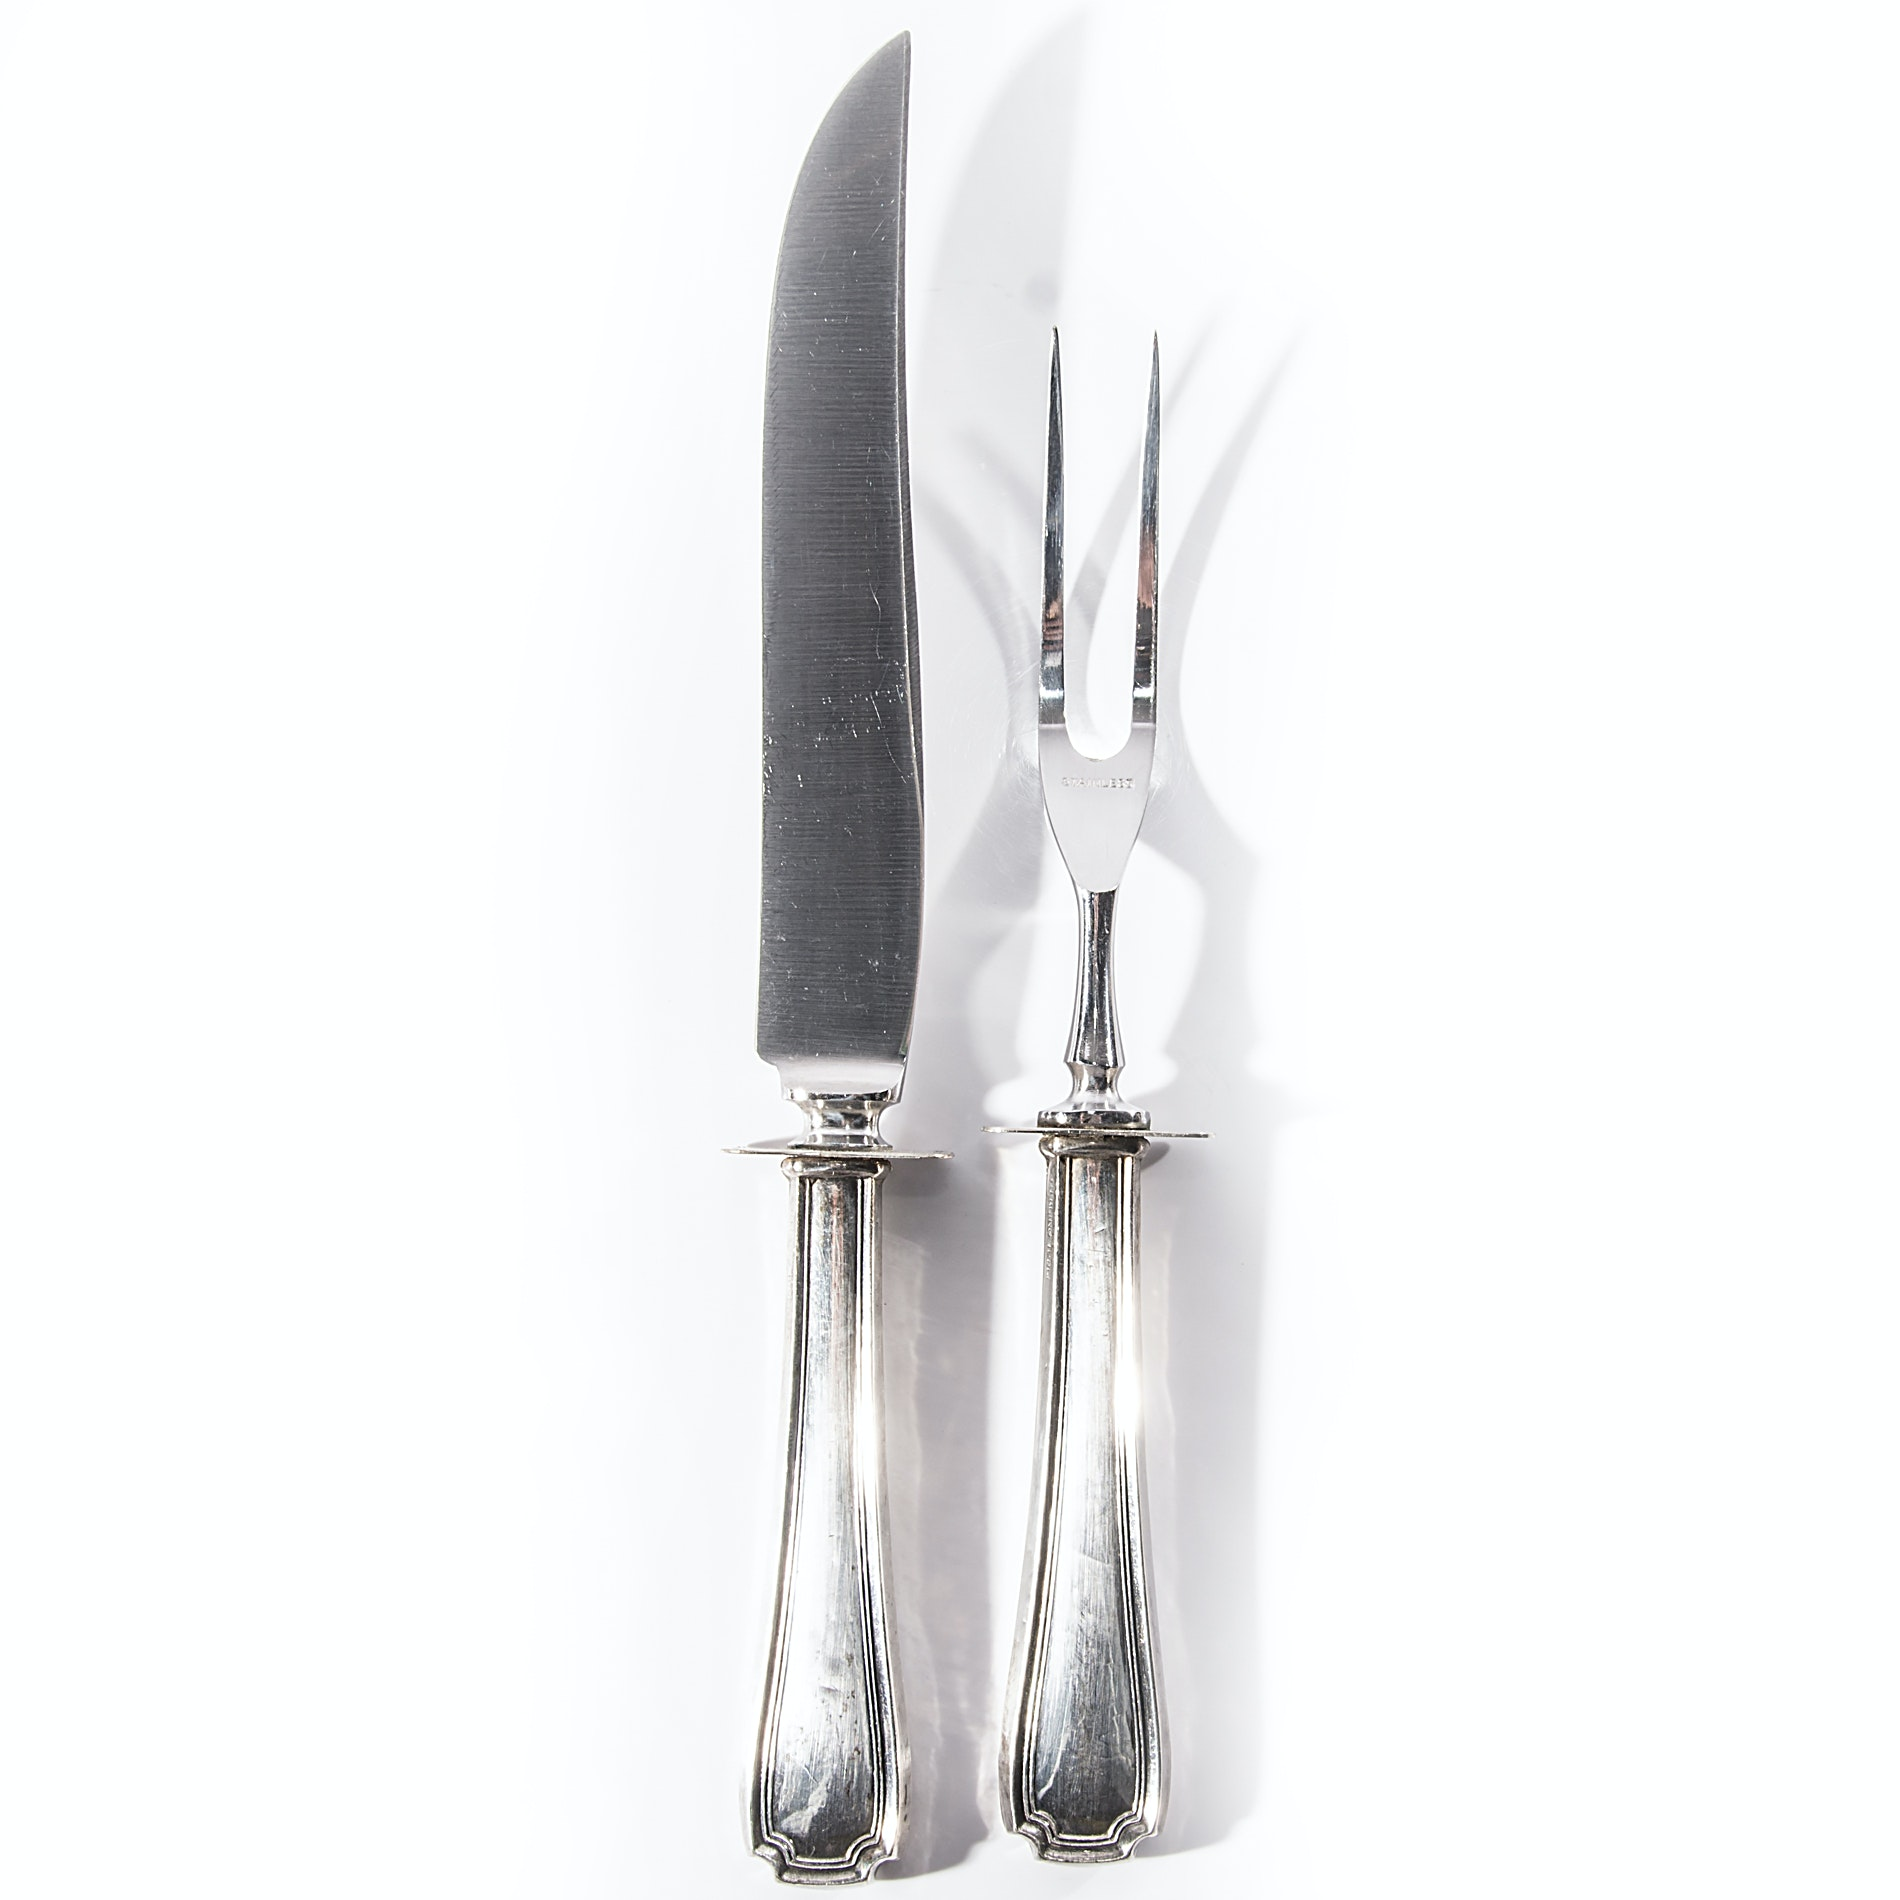 Sterling Silver and Stainless Steel Carving Set